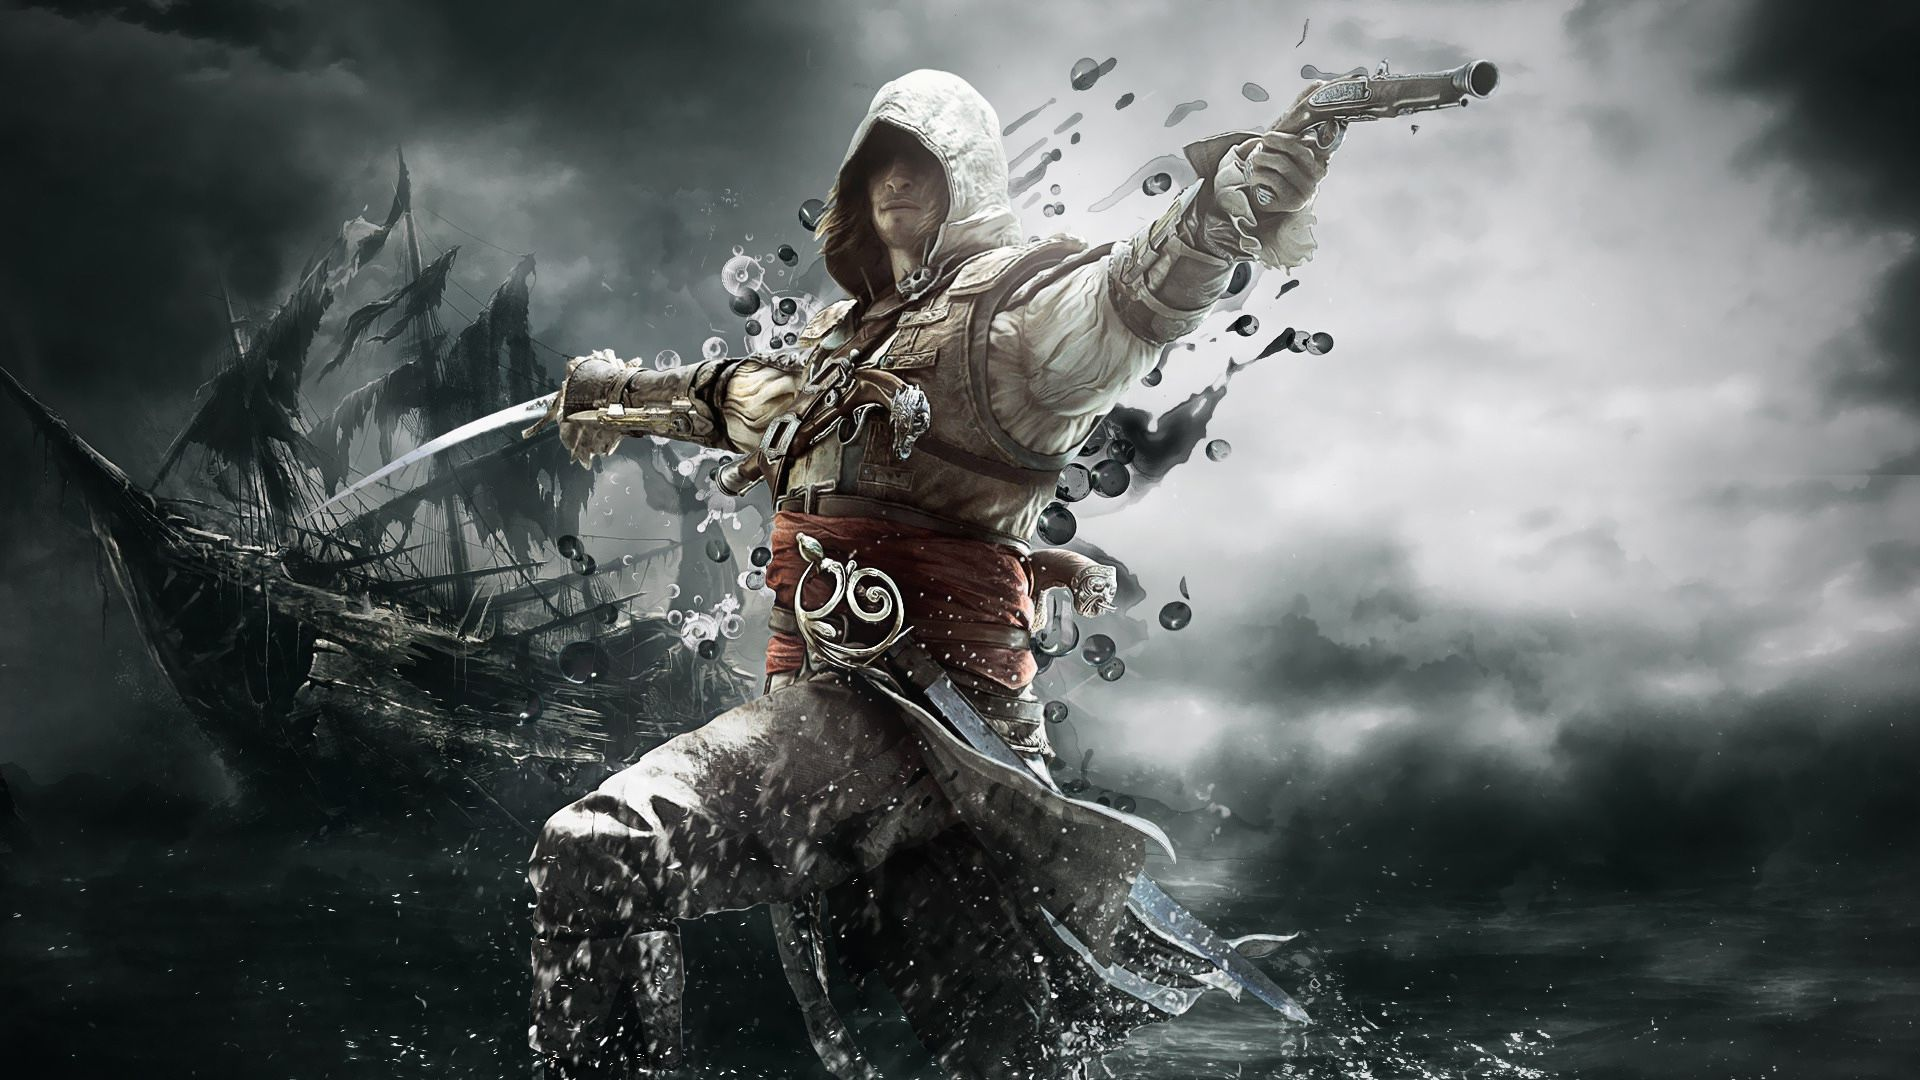 Edward Kenway Assassin S Creed Iv Black Flag Assassin S Creed 4 4k 1038992 Hd Wallpaper Backgrounds Download